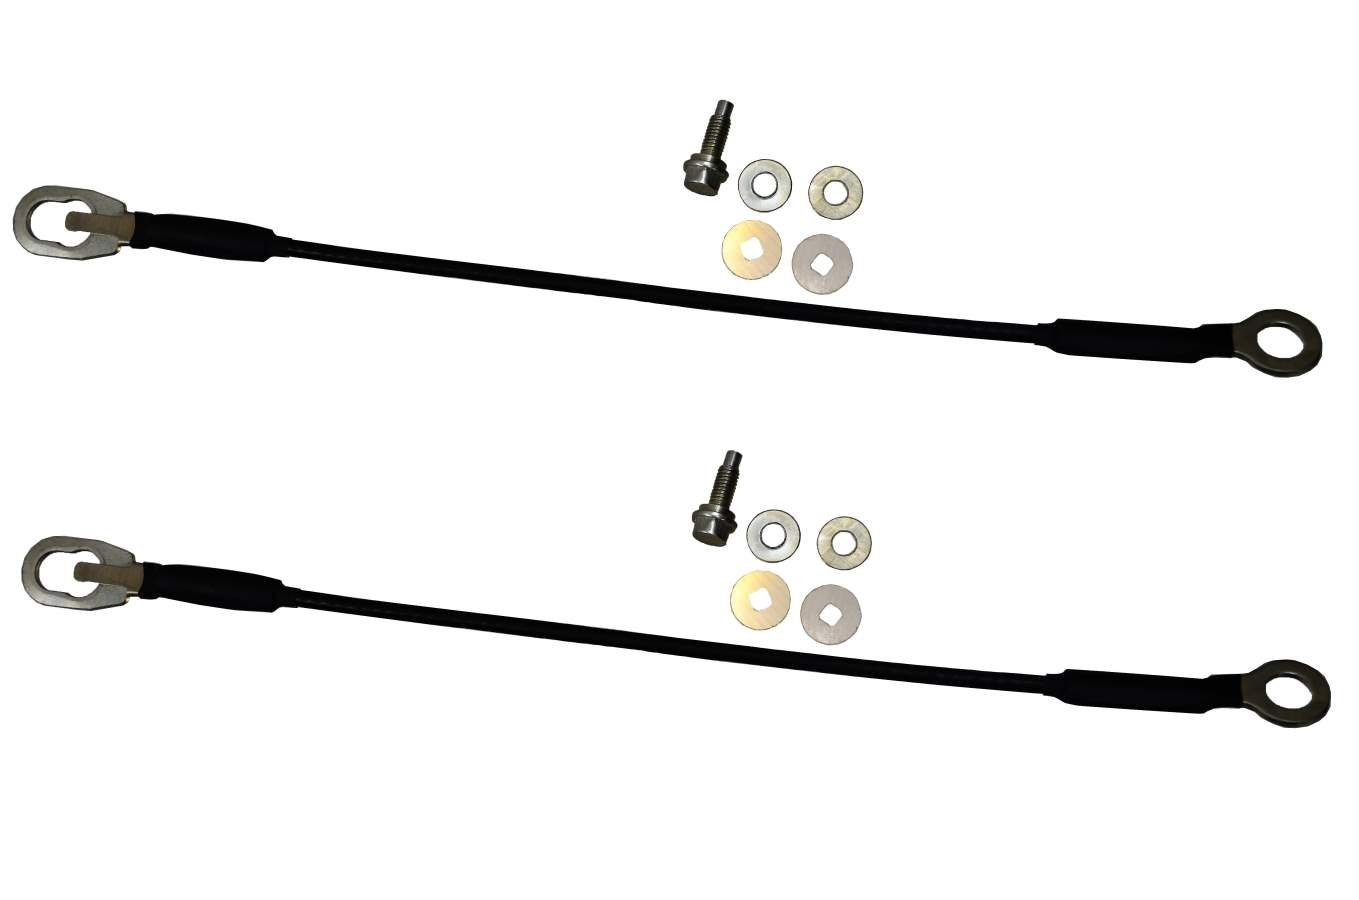 PT Auto Warehouse TC-NI004-P - Tailgate Lift Support Cable - Length 16 3/4 Inch, Left/Right Pair